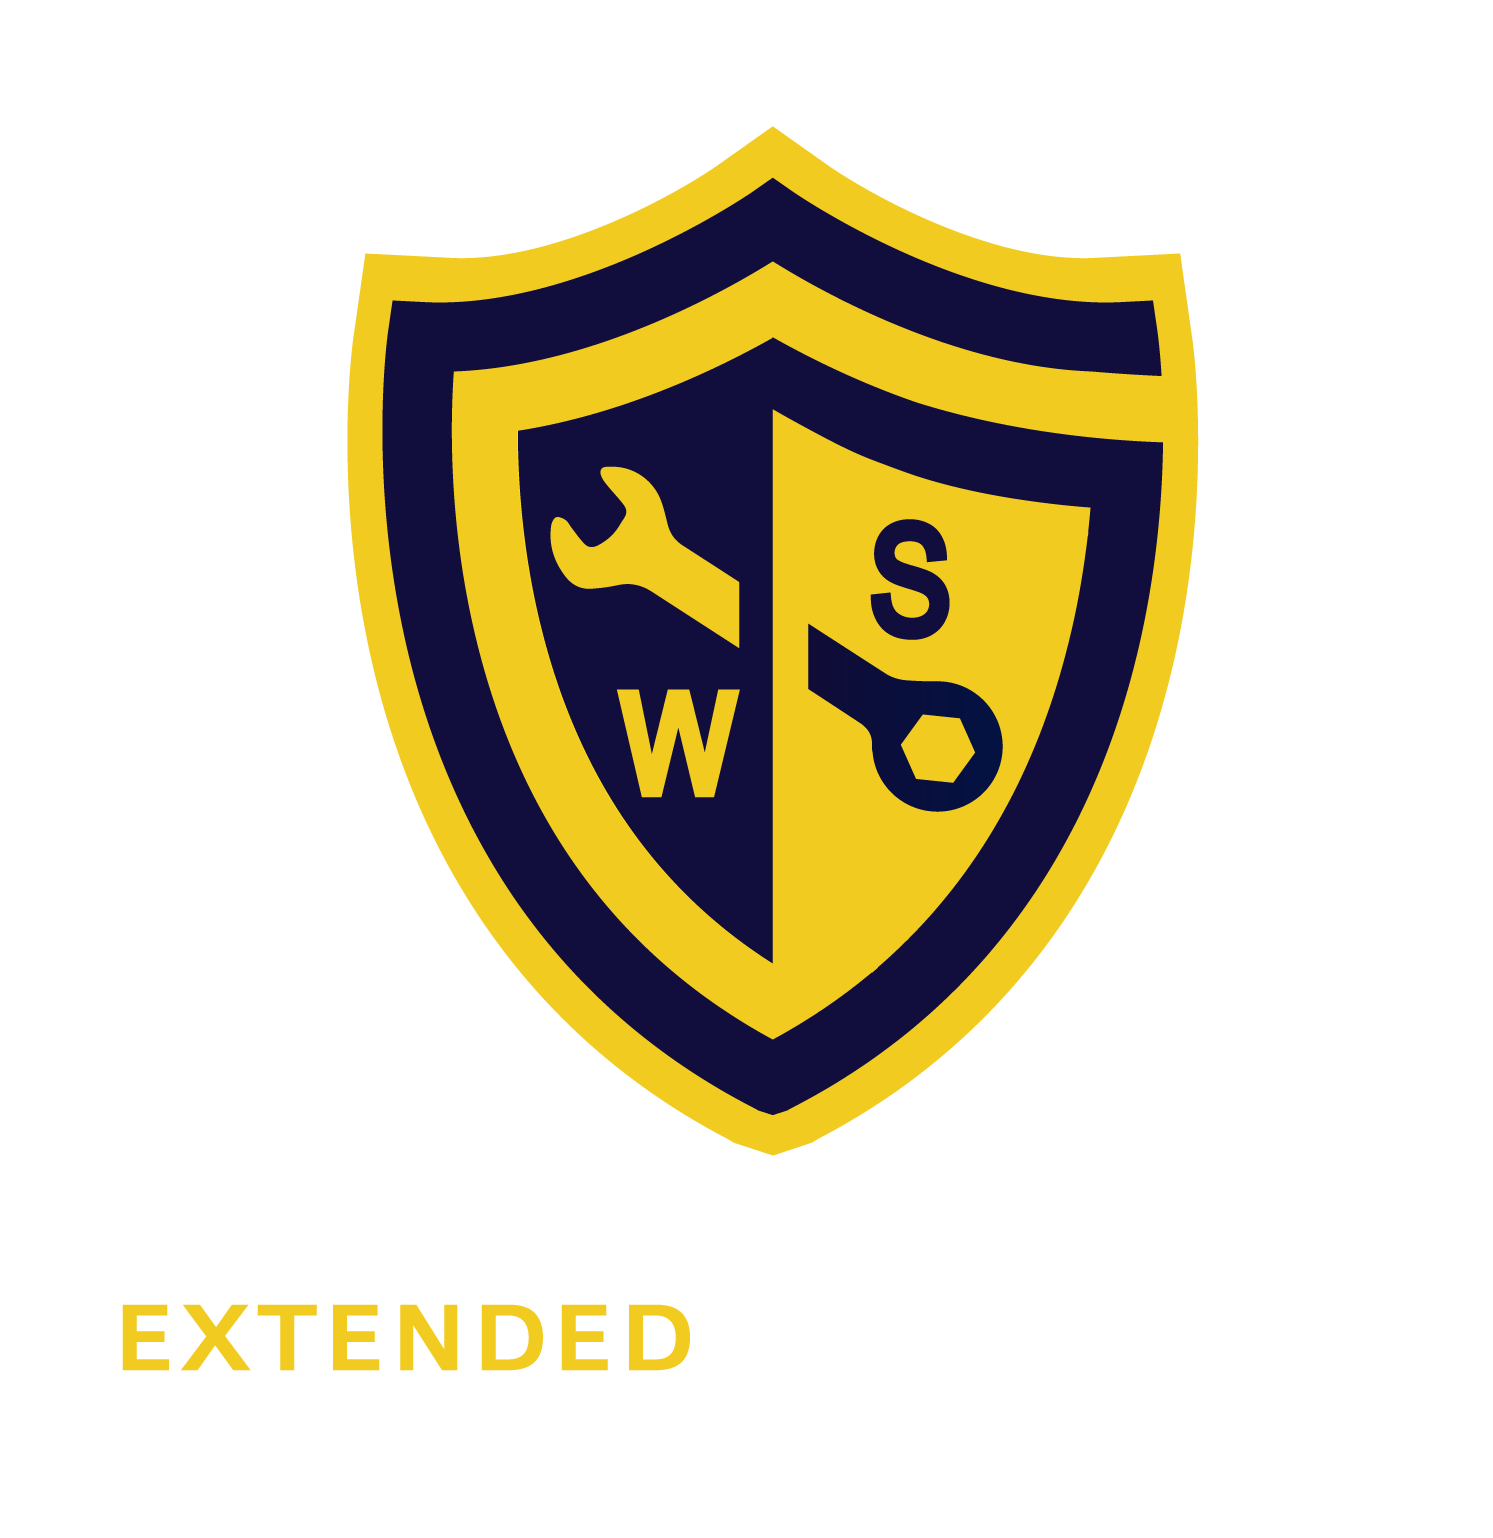 Wheel and Sprocket's Extended Service Plan